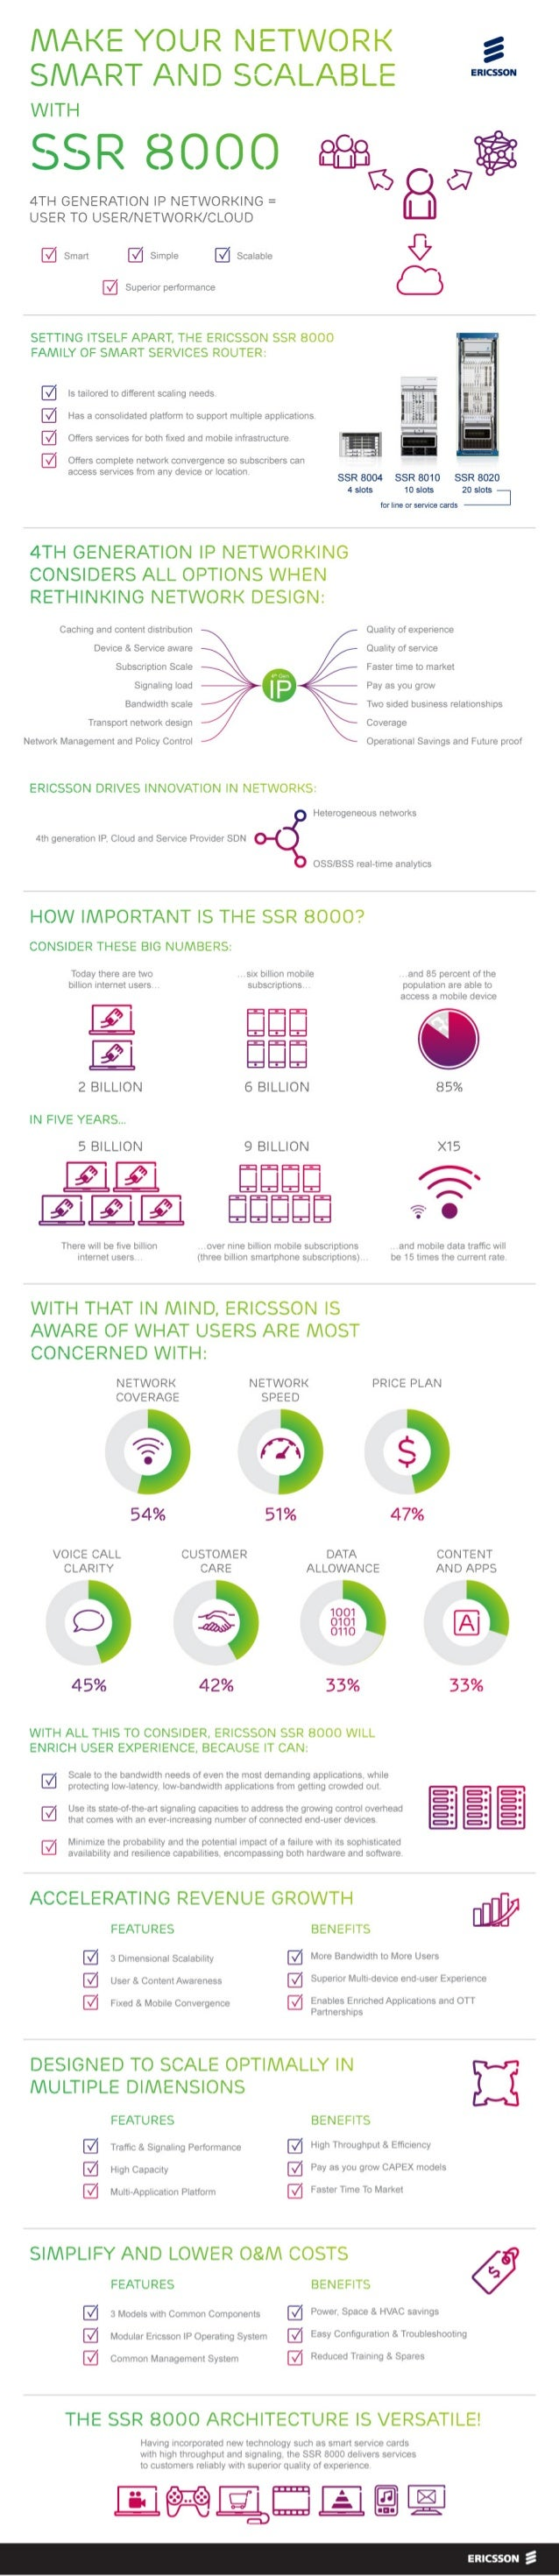 Eantc ericsson ein marketing report | router (computing.